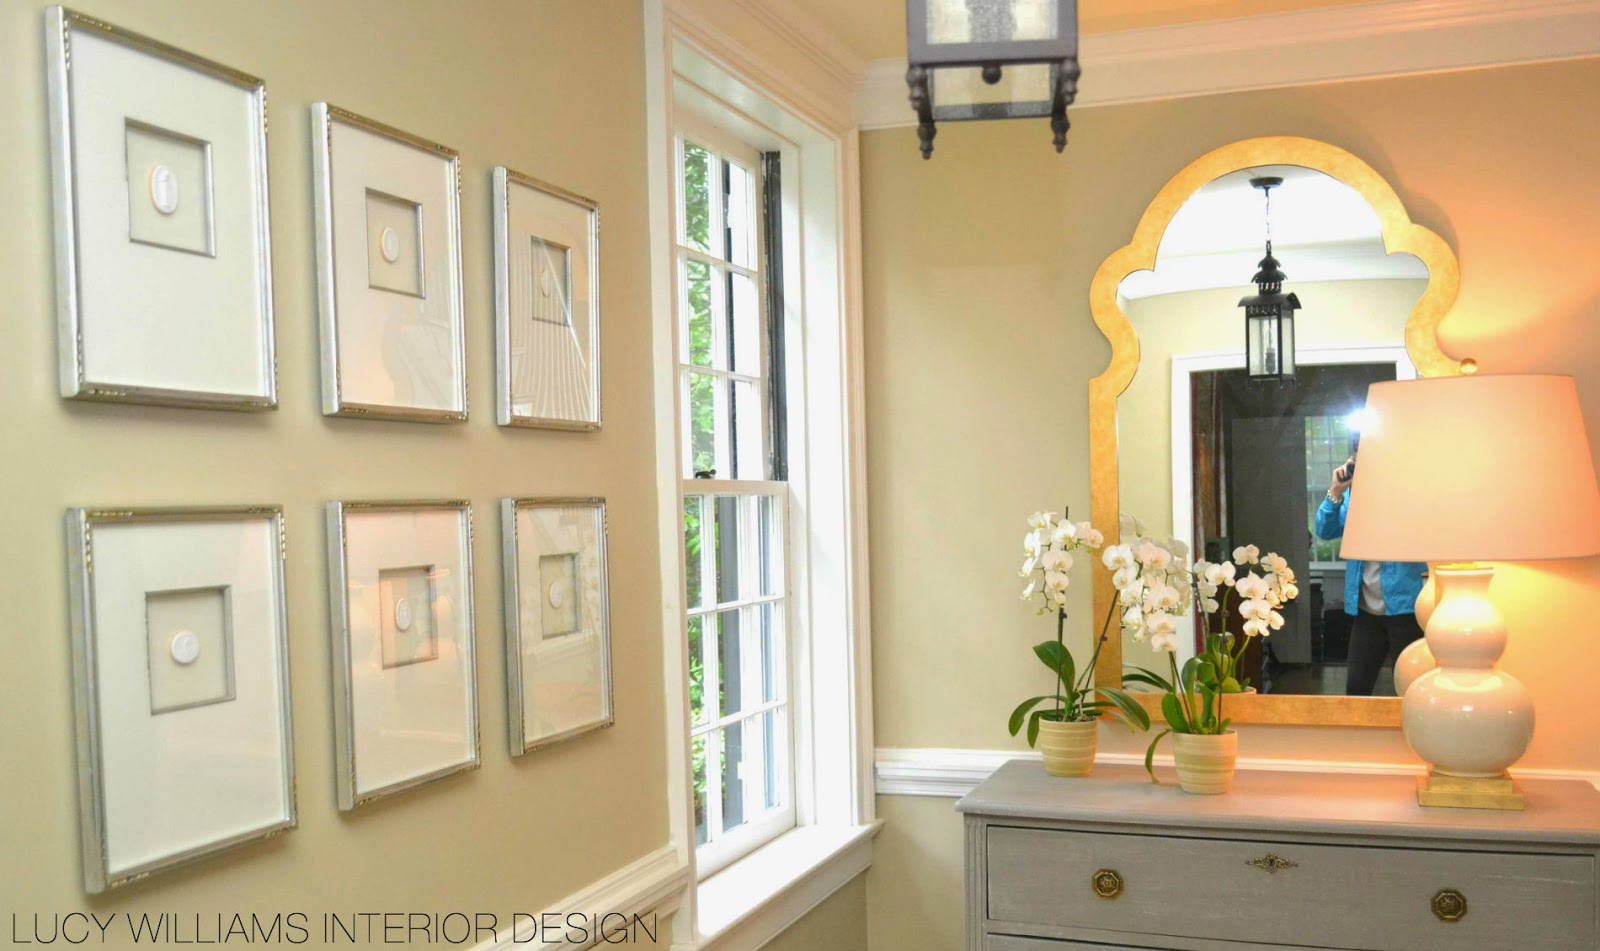 This intaglios series really helped to widen the wall for Lucy williams interiors